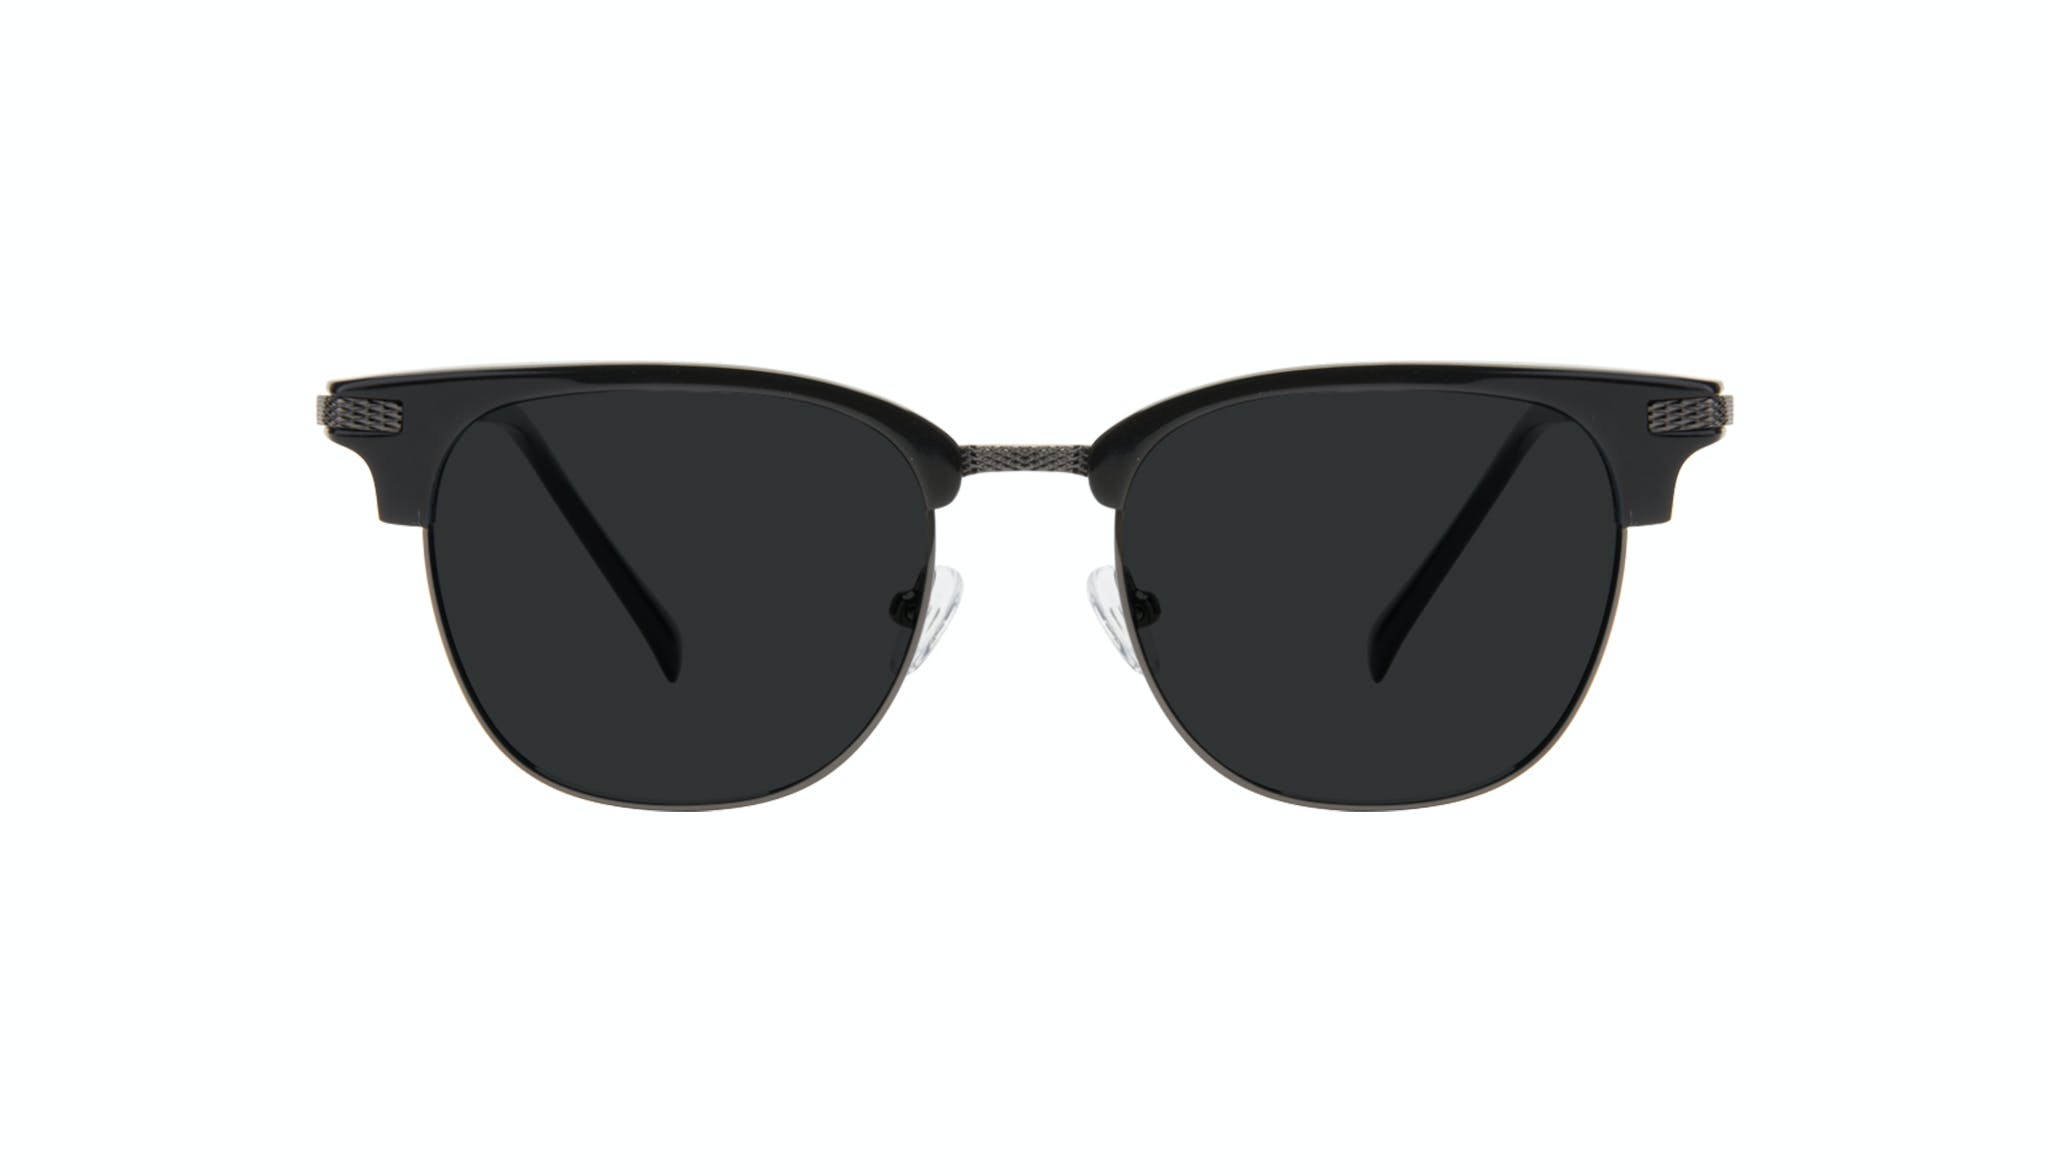 Affordable Fashion Glasses Square Sunglasses Men Blacktie Onyx